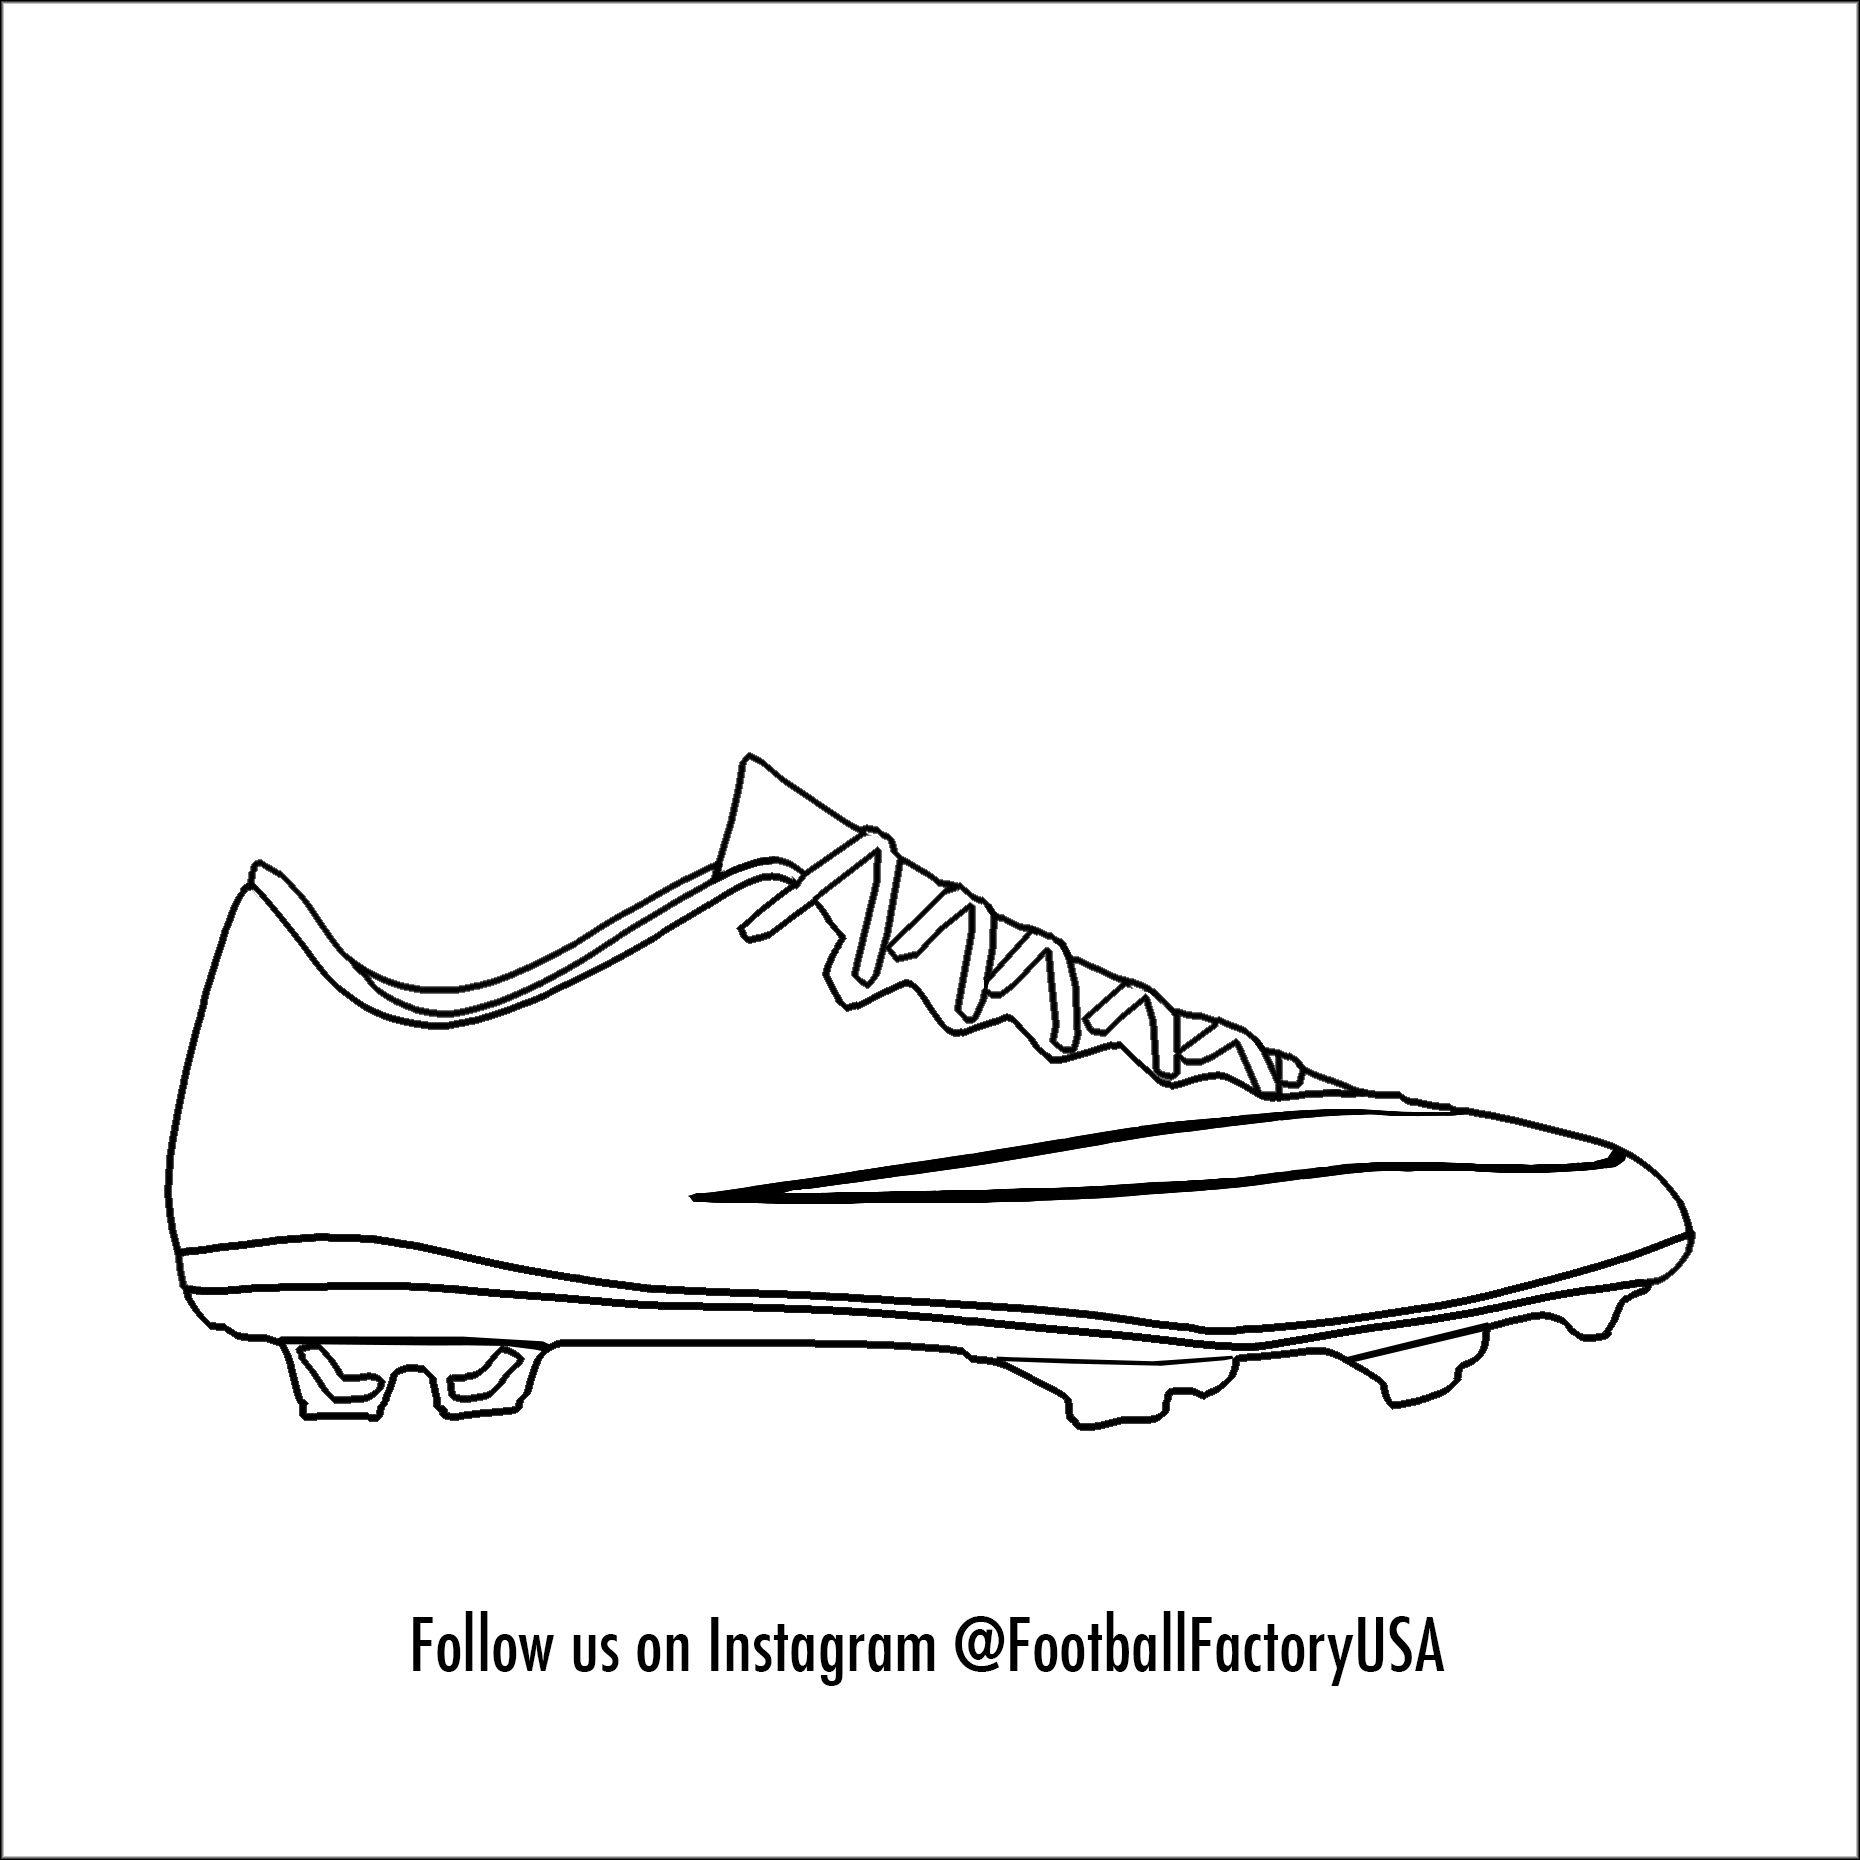 Soccer Cleats Coloring Pages Soccer Cleats Messi Soccer Cleats Soccer Cleats Nike